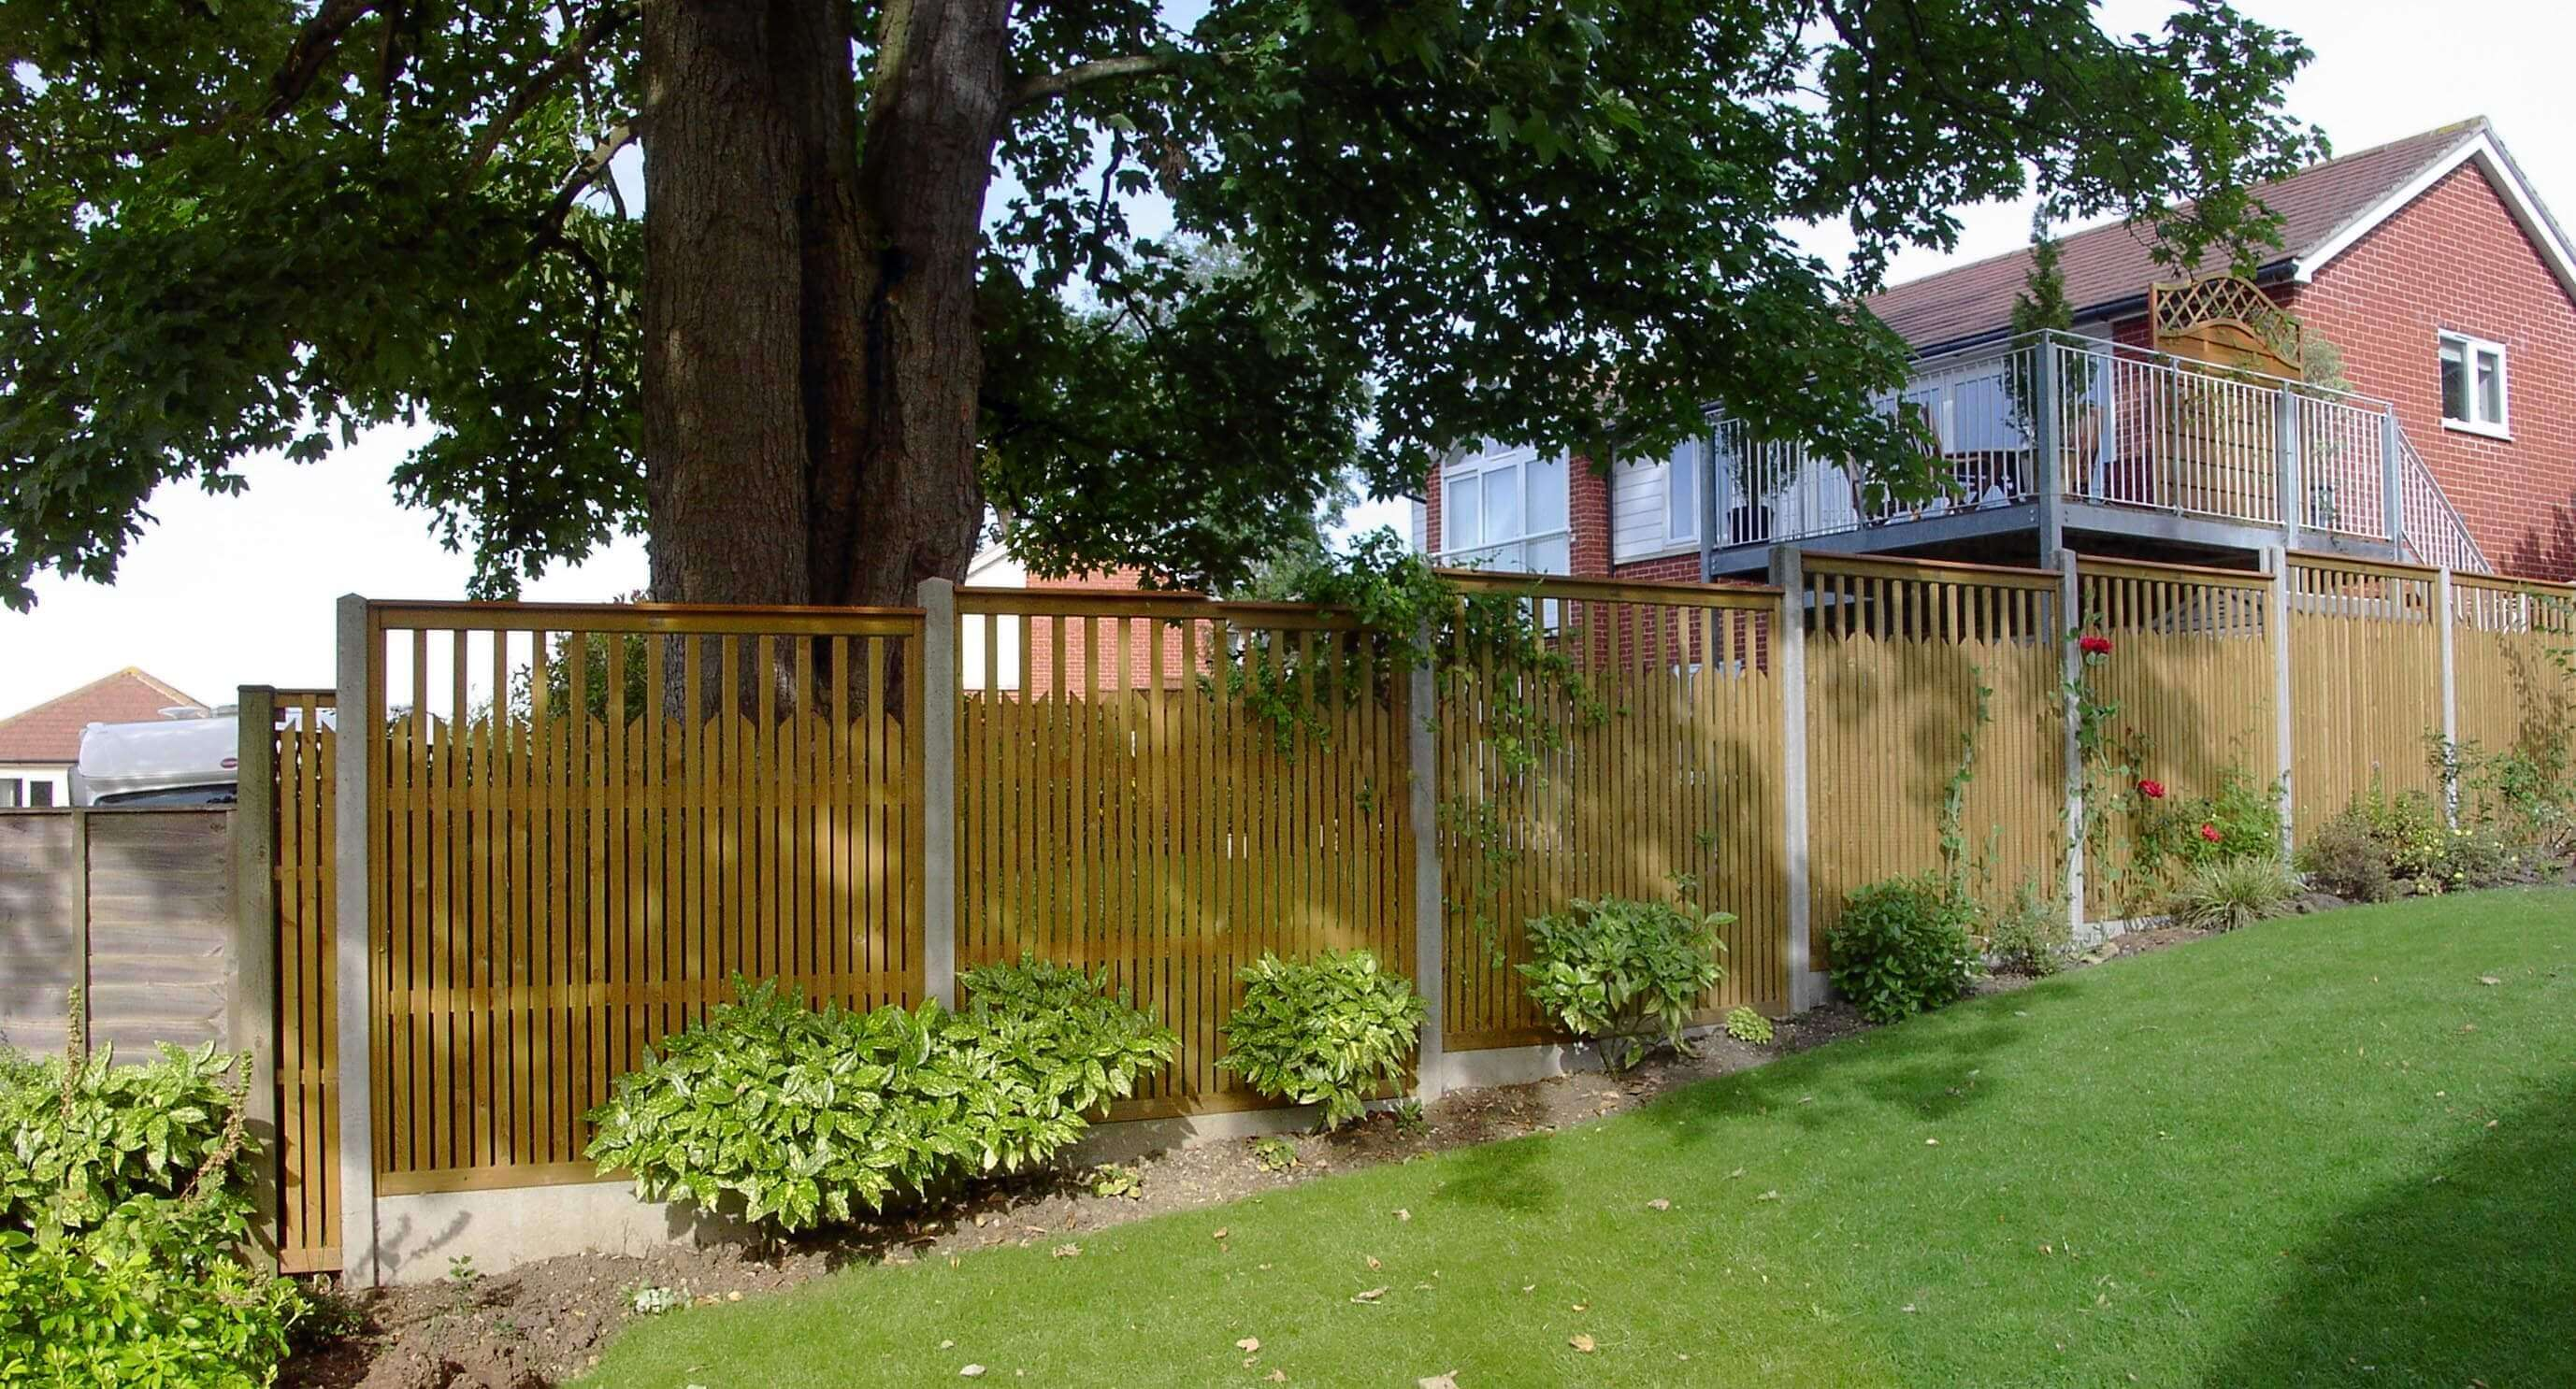 semi transparent Paliframe fence panels